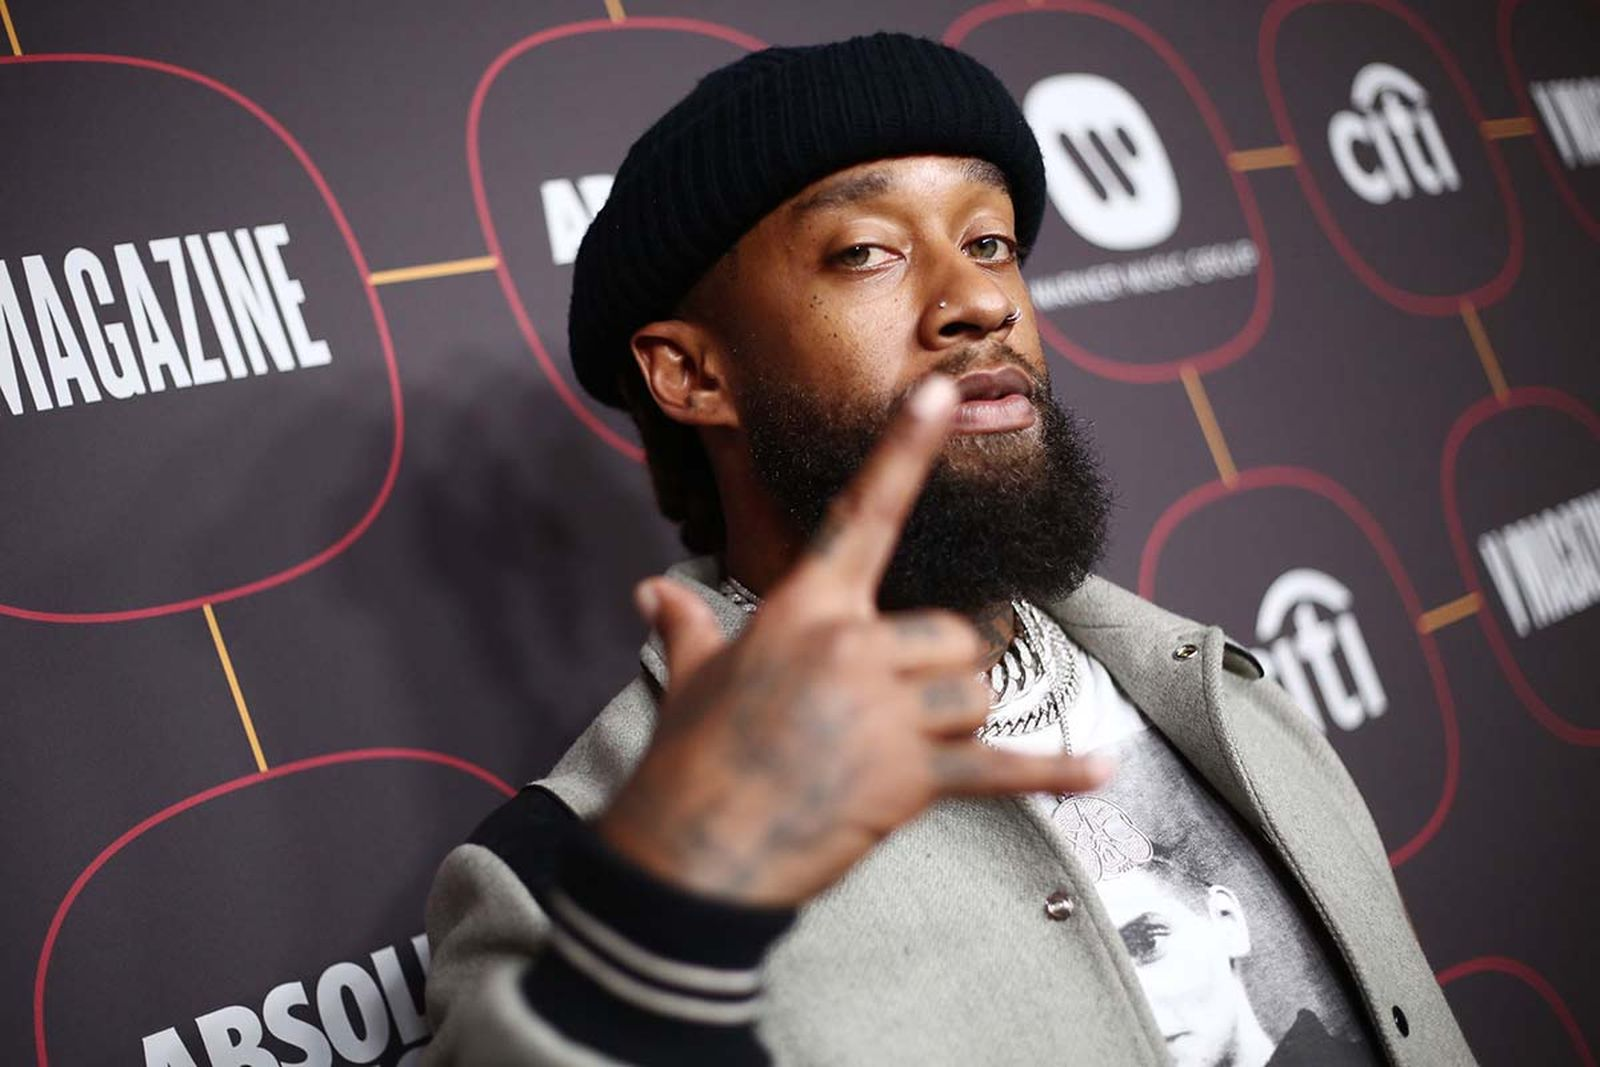 Ty Dolla $ign attends the Warner Music Group Pre-Grammy Party